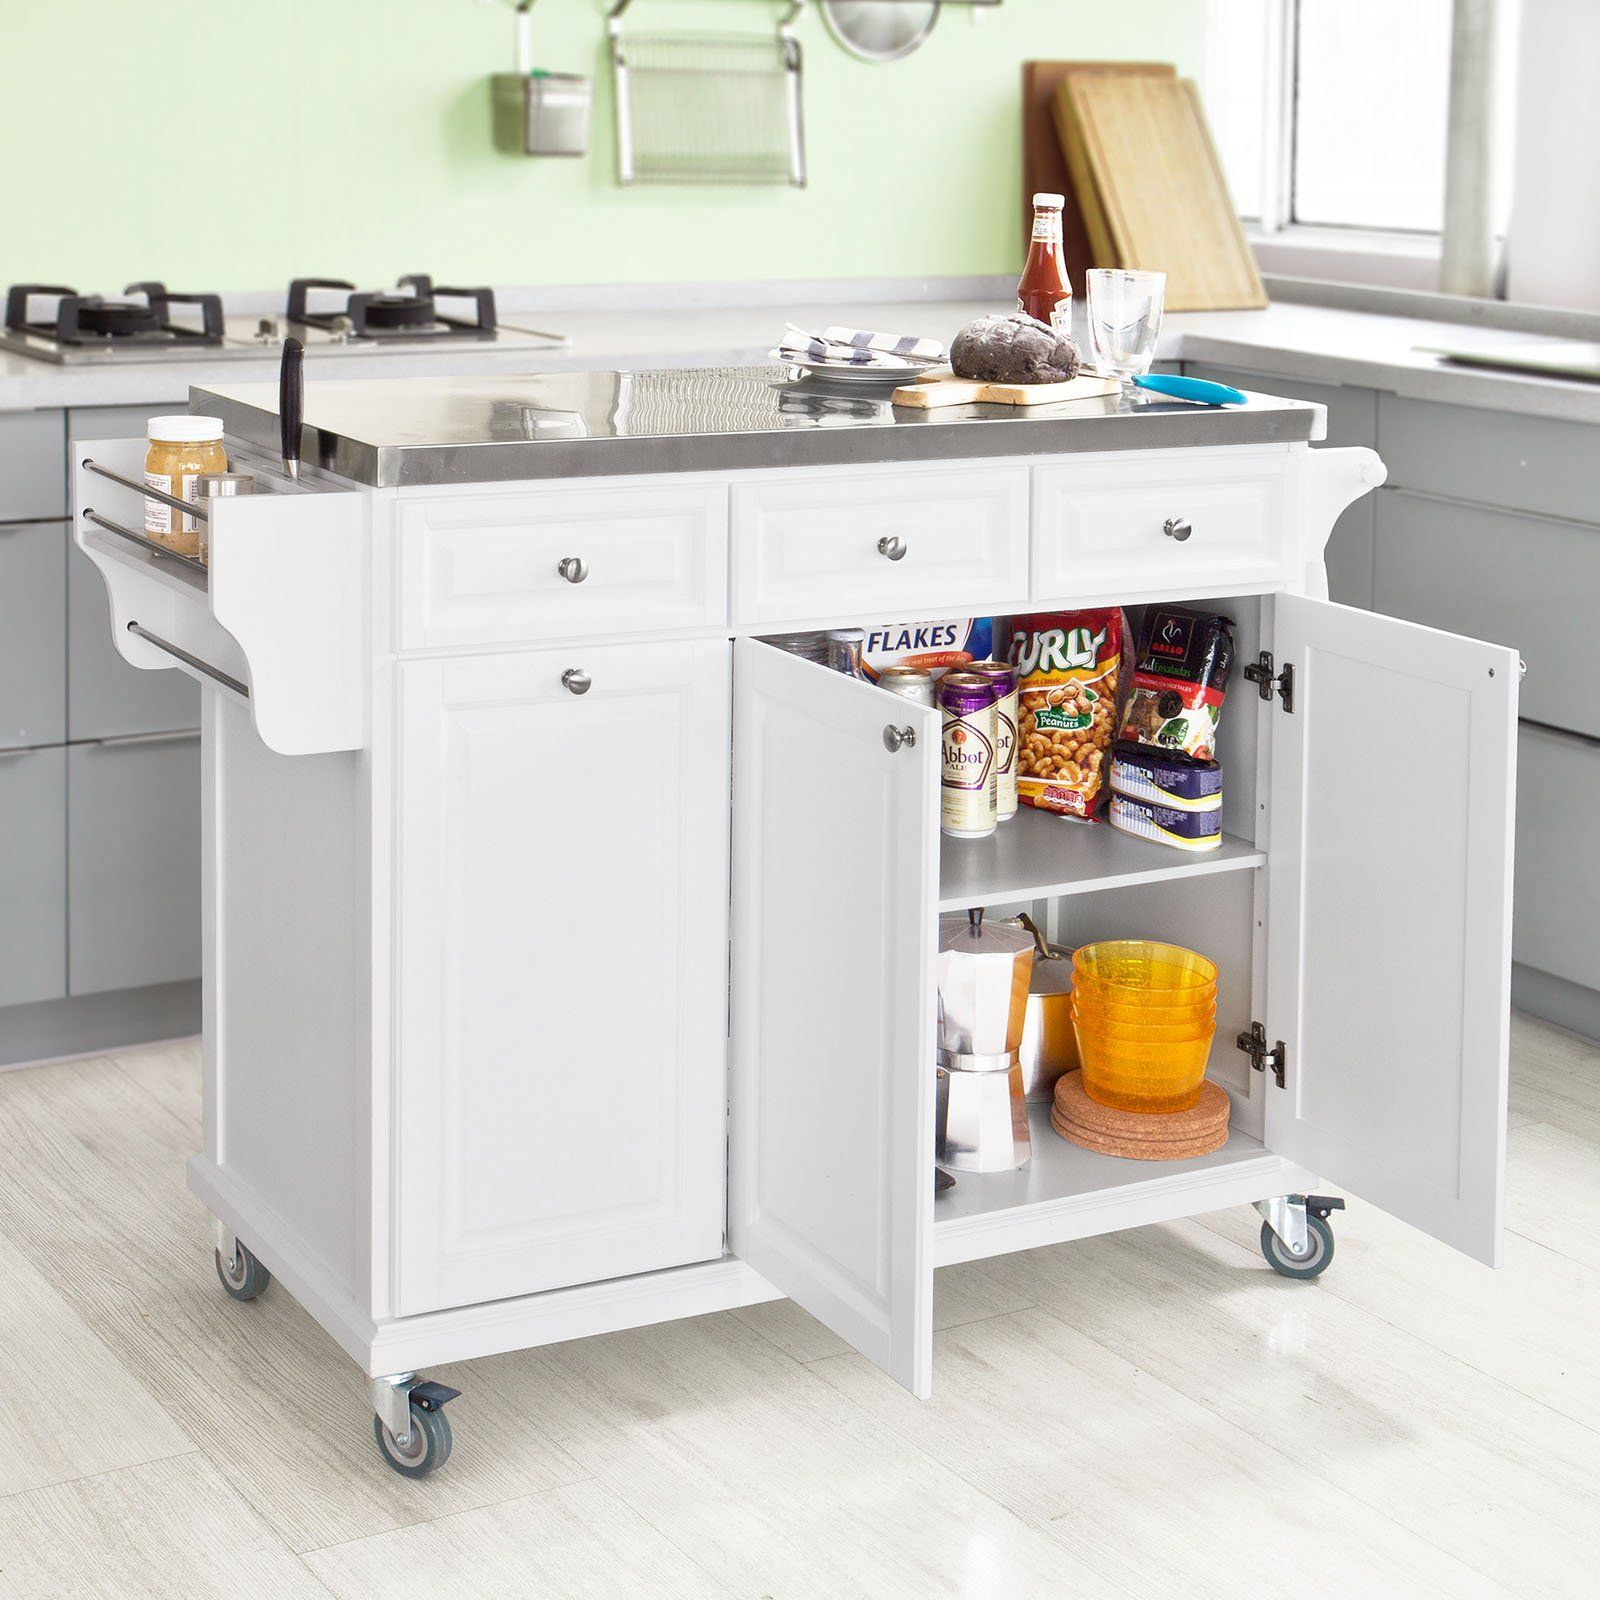 sobuy white luxury kitchen island storage trolley cart, kitchen